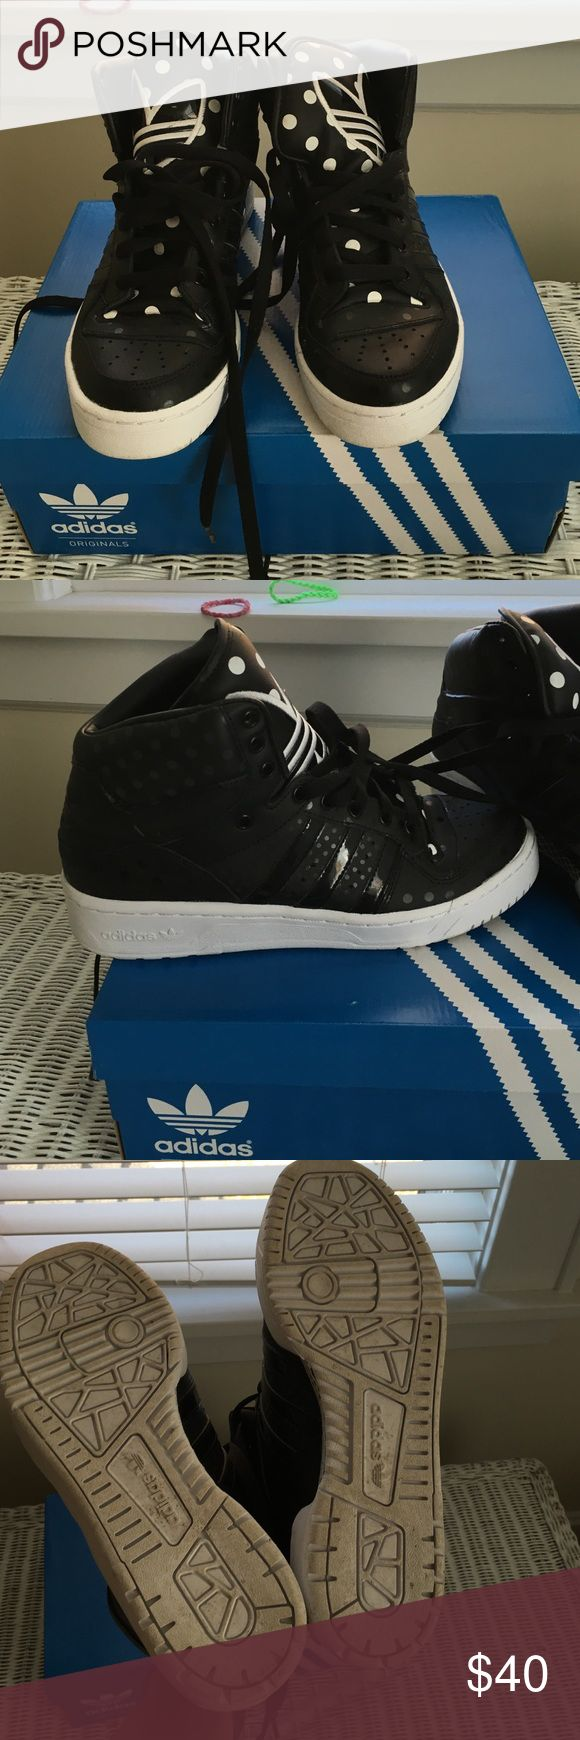 Adidas attitude logo high top sneakers. Worn twice. White polka dots on lip and black polka dots on shoes - subtle Adidas Shoes Sneakers